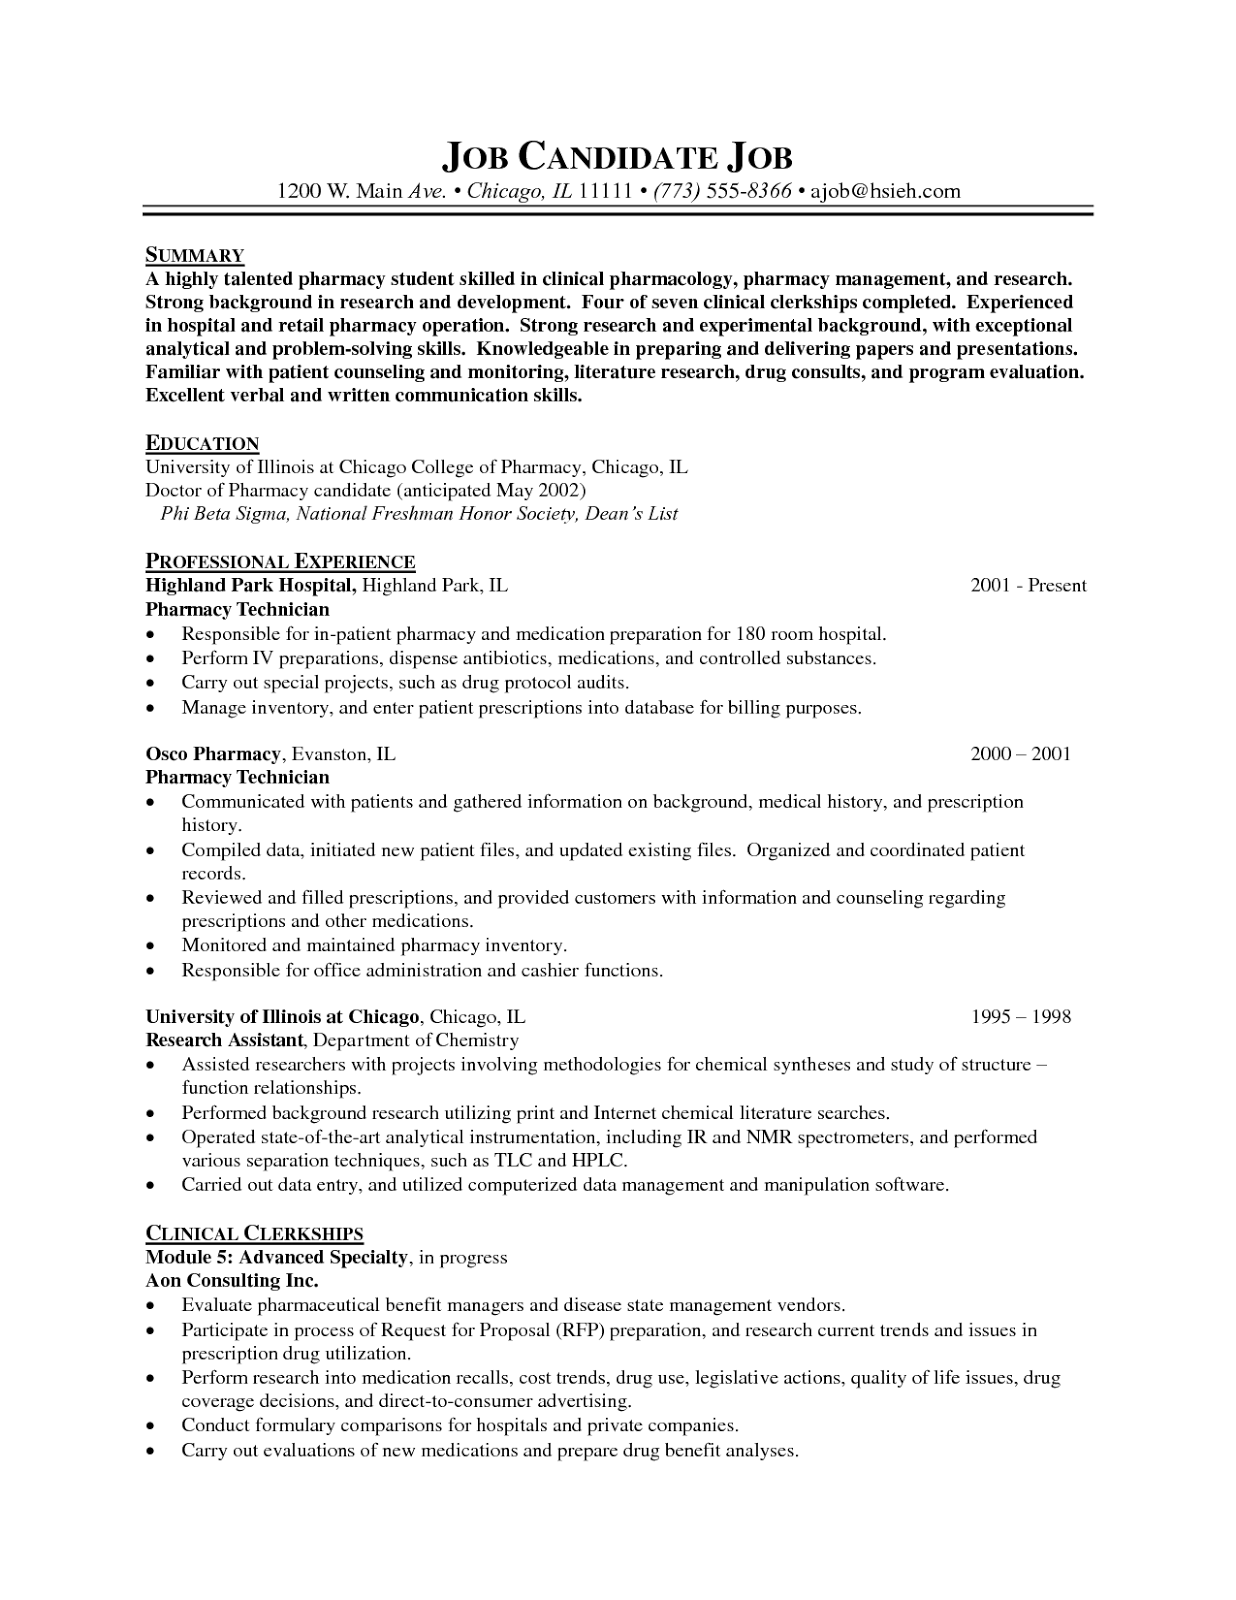 Analytical Chemist Cover Letter Choice Image - Cover Letter Ideas